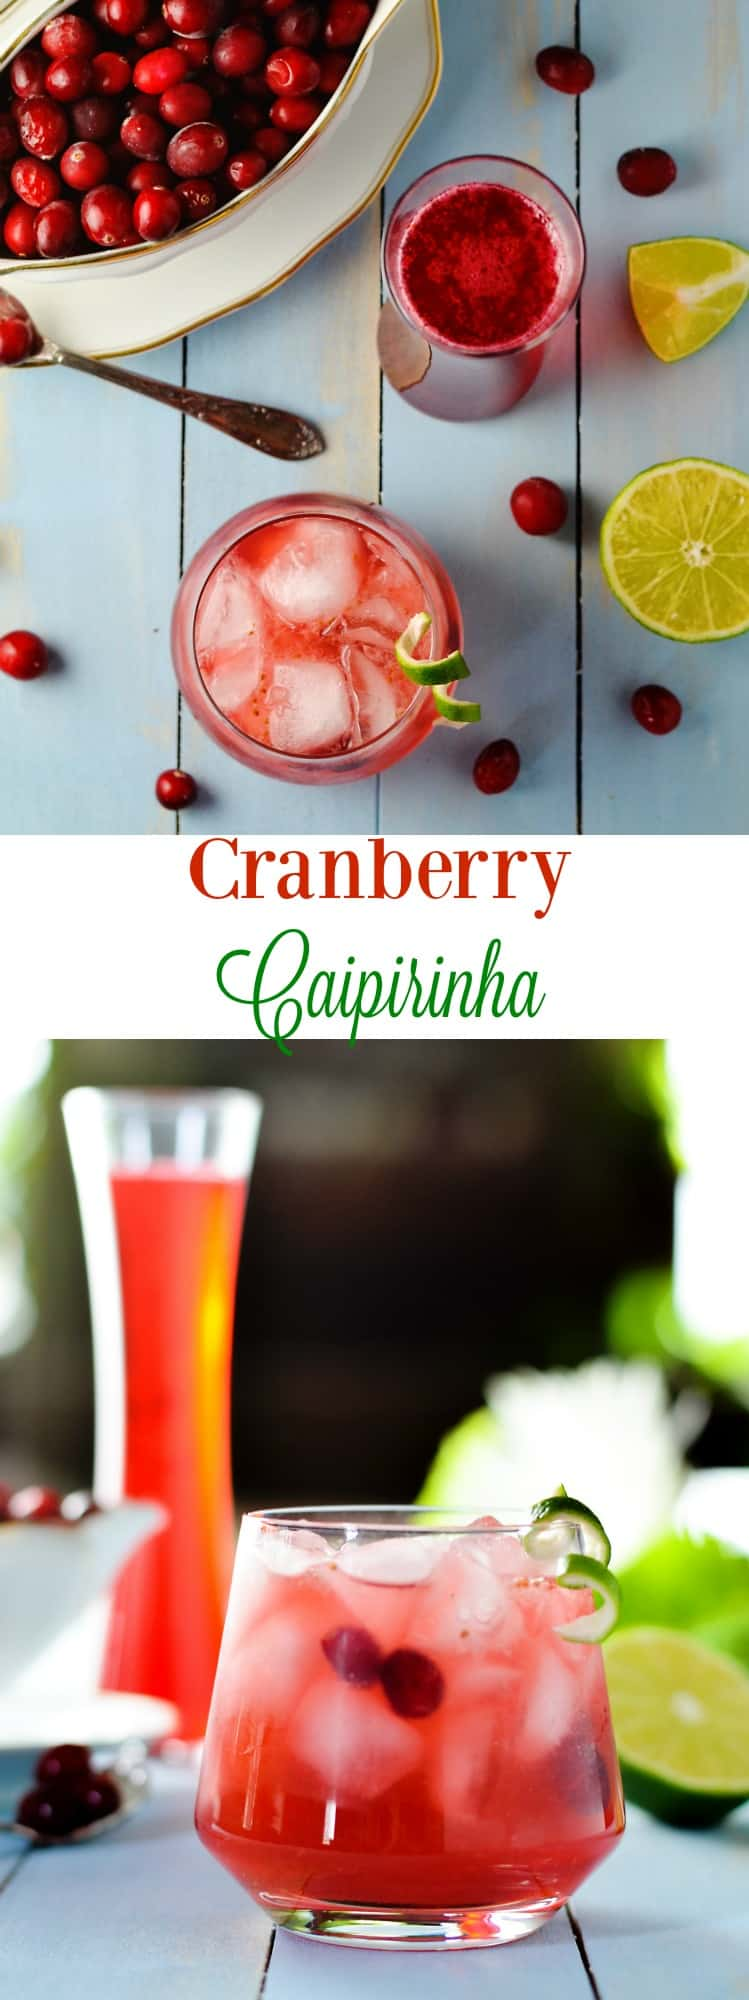 Cranberry Caipirinha is the ultimate winter refreshing cocktail.